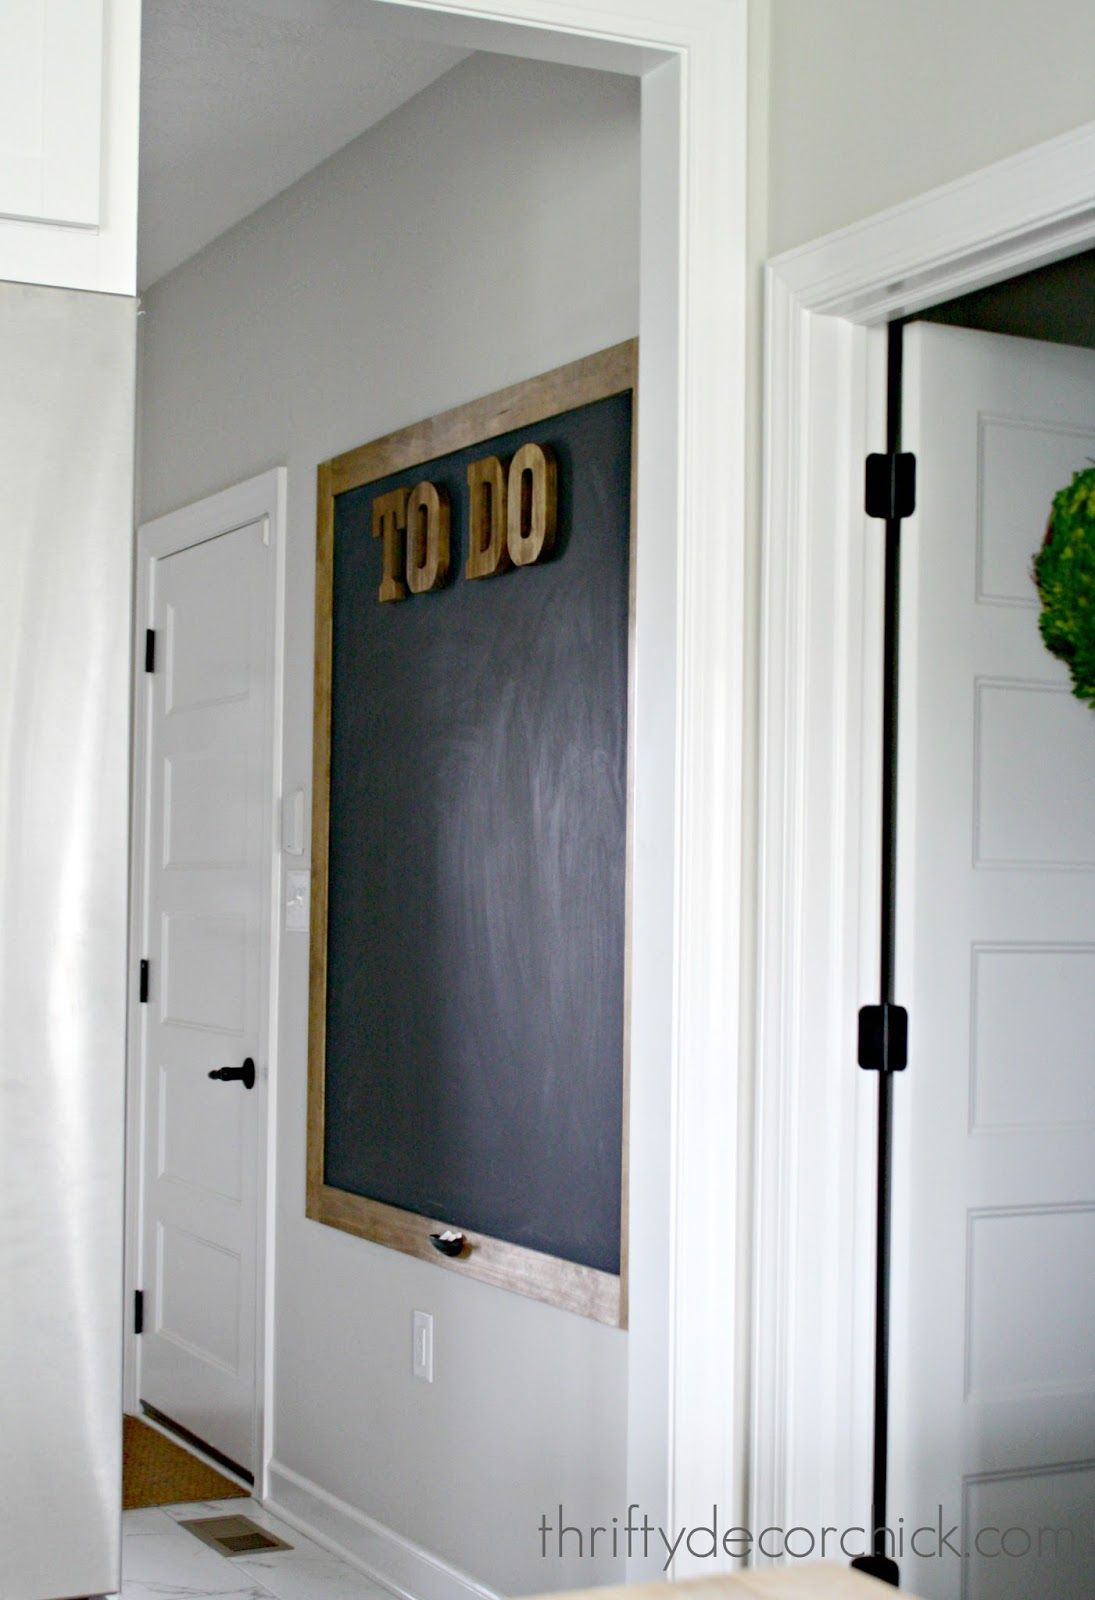 Huge Diy Chalkboard How To Interior Doors For Sale Interior Design Classes House Paint Interior